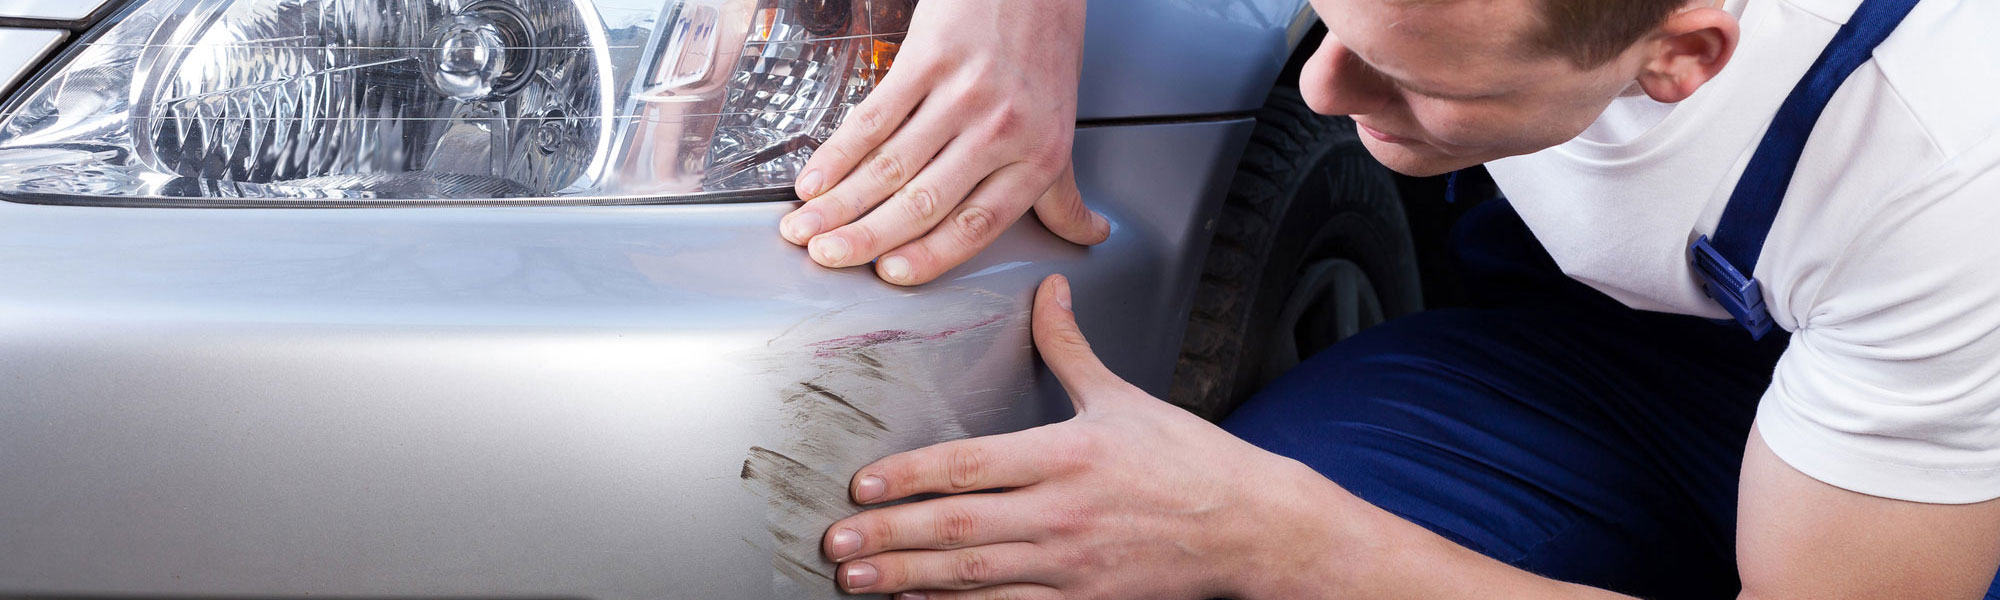 Plastic Bumper Repair | Dent Removal Body shop | Largo | Seminole | Clearwater | Scratch N' Dent Autobody & Collision